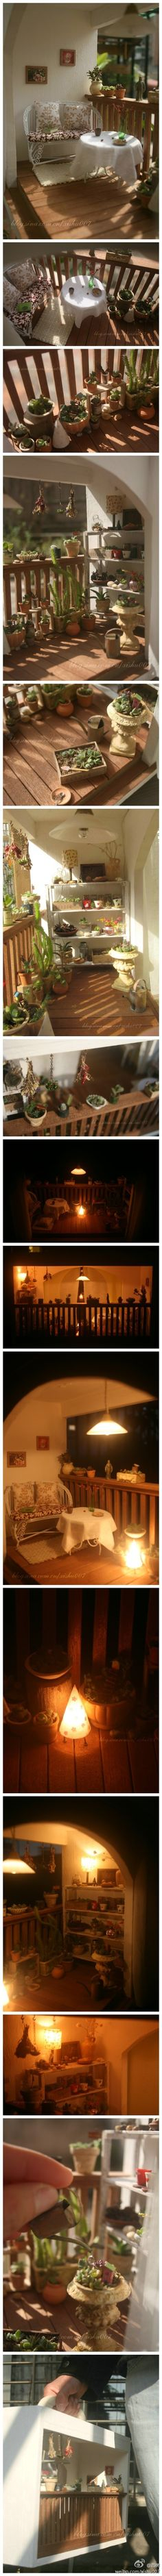 Miniature deck/porch with tiny miniature garden and tiny plants, lights, watering can--just wonderful!